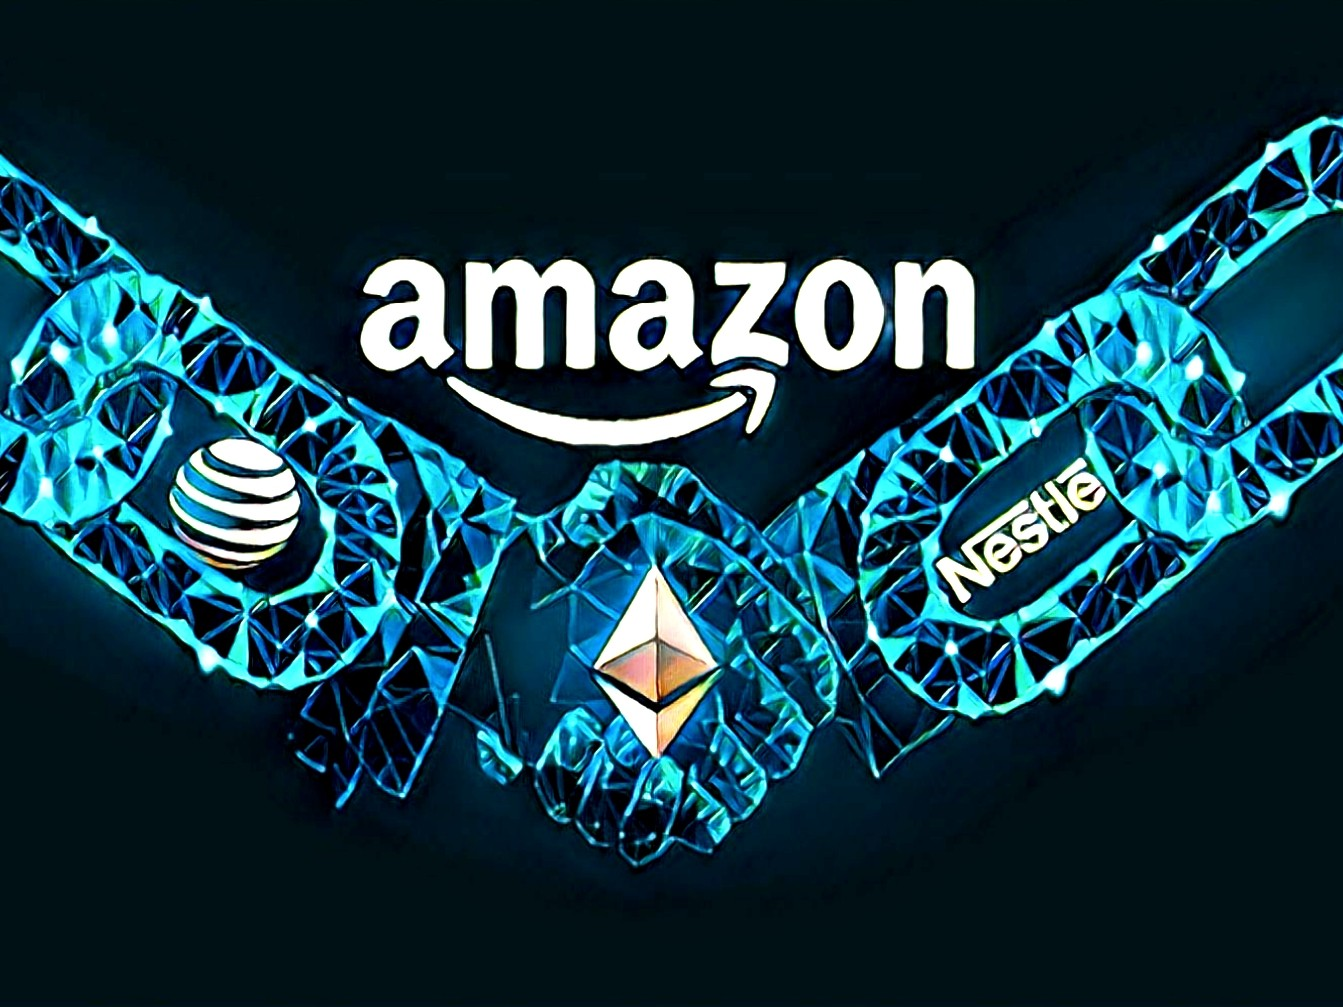 Amazon-Web-Services-AWS-Announces-General-Availability-of-Amazon-Managed-Blockchain